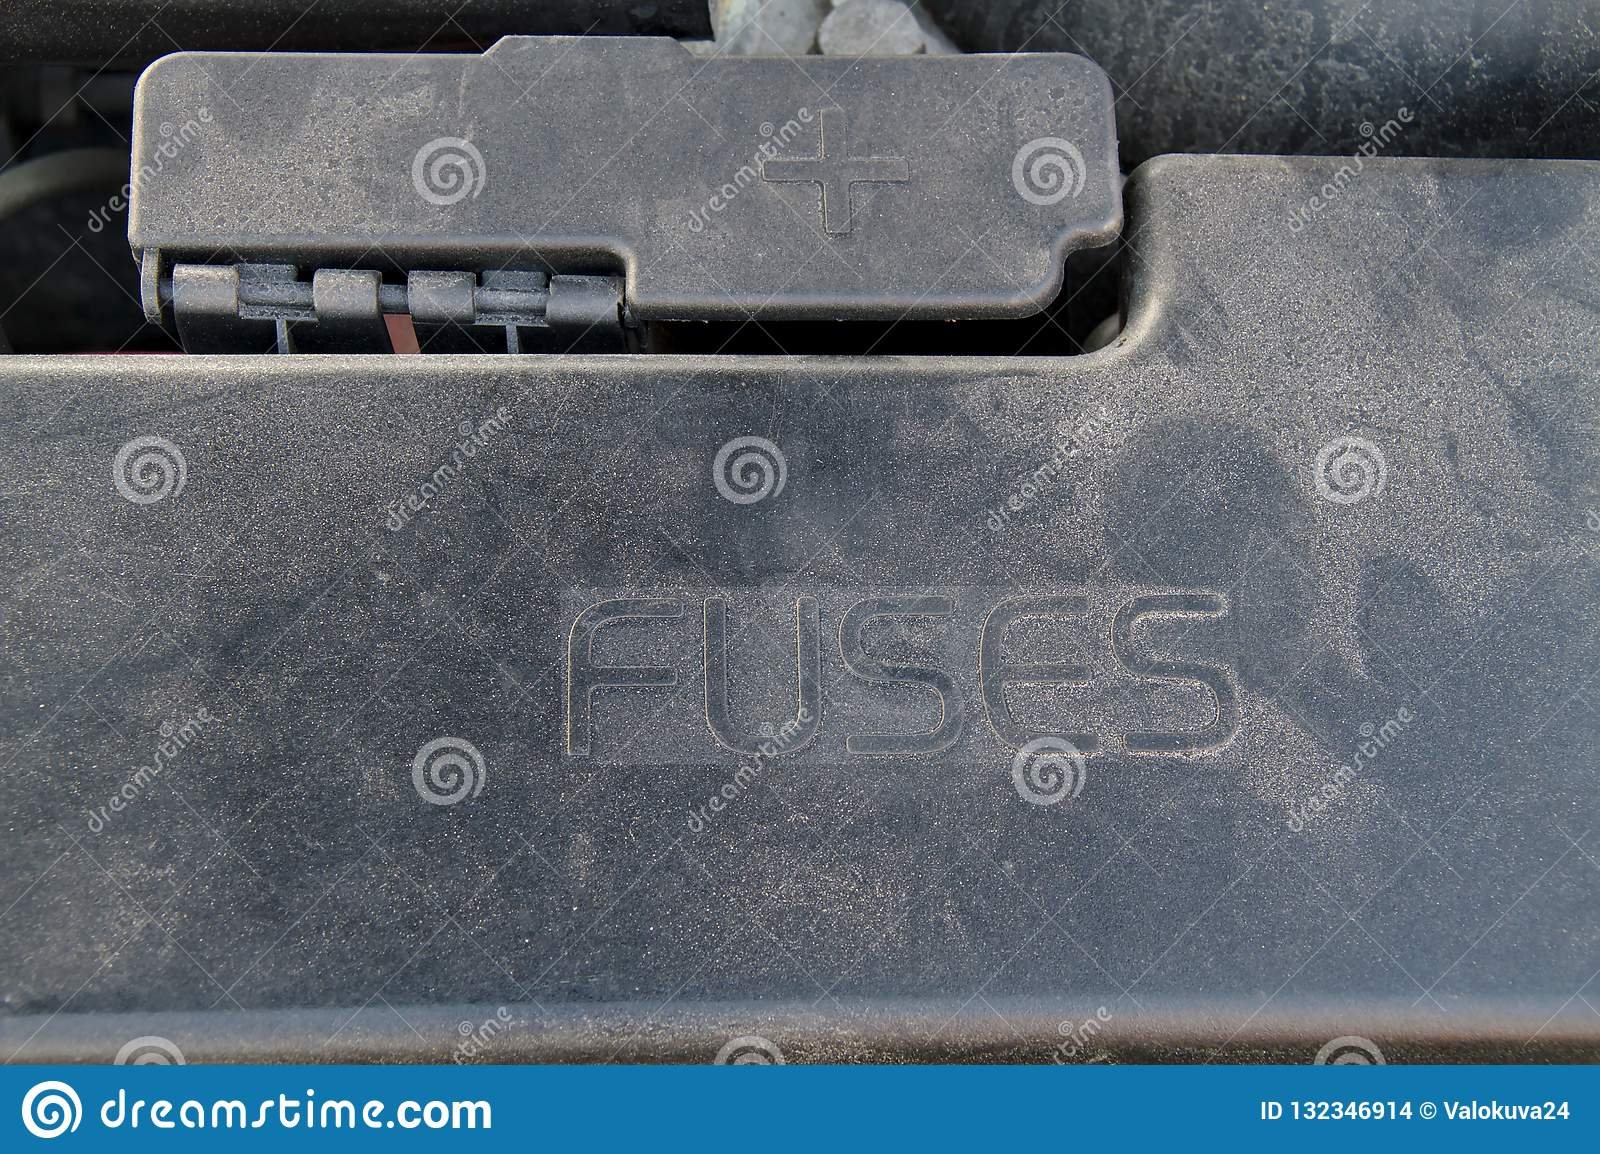 hight resolution of cover of a under hood fuse box of a car external plus terminal for jumper cables next to the fusebox